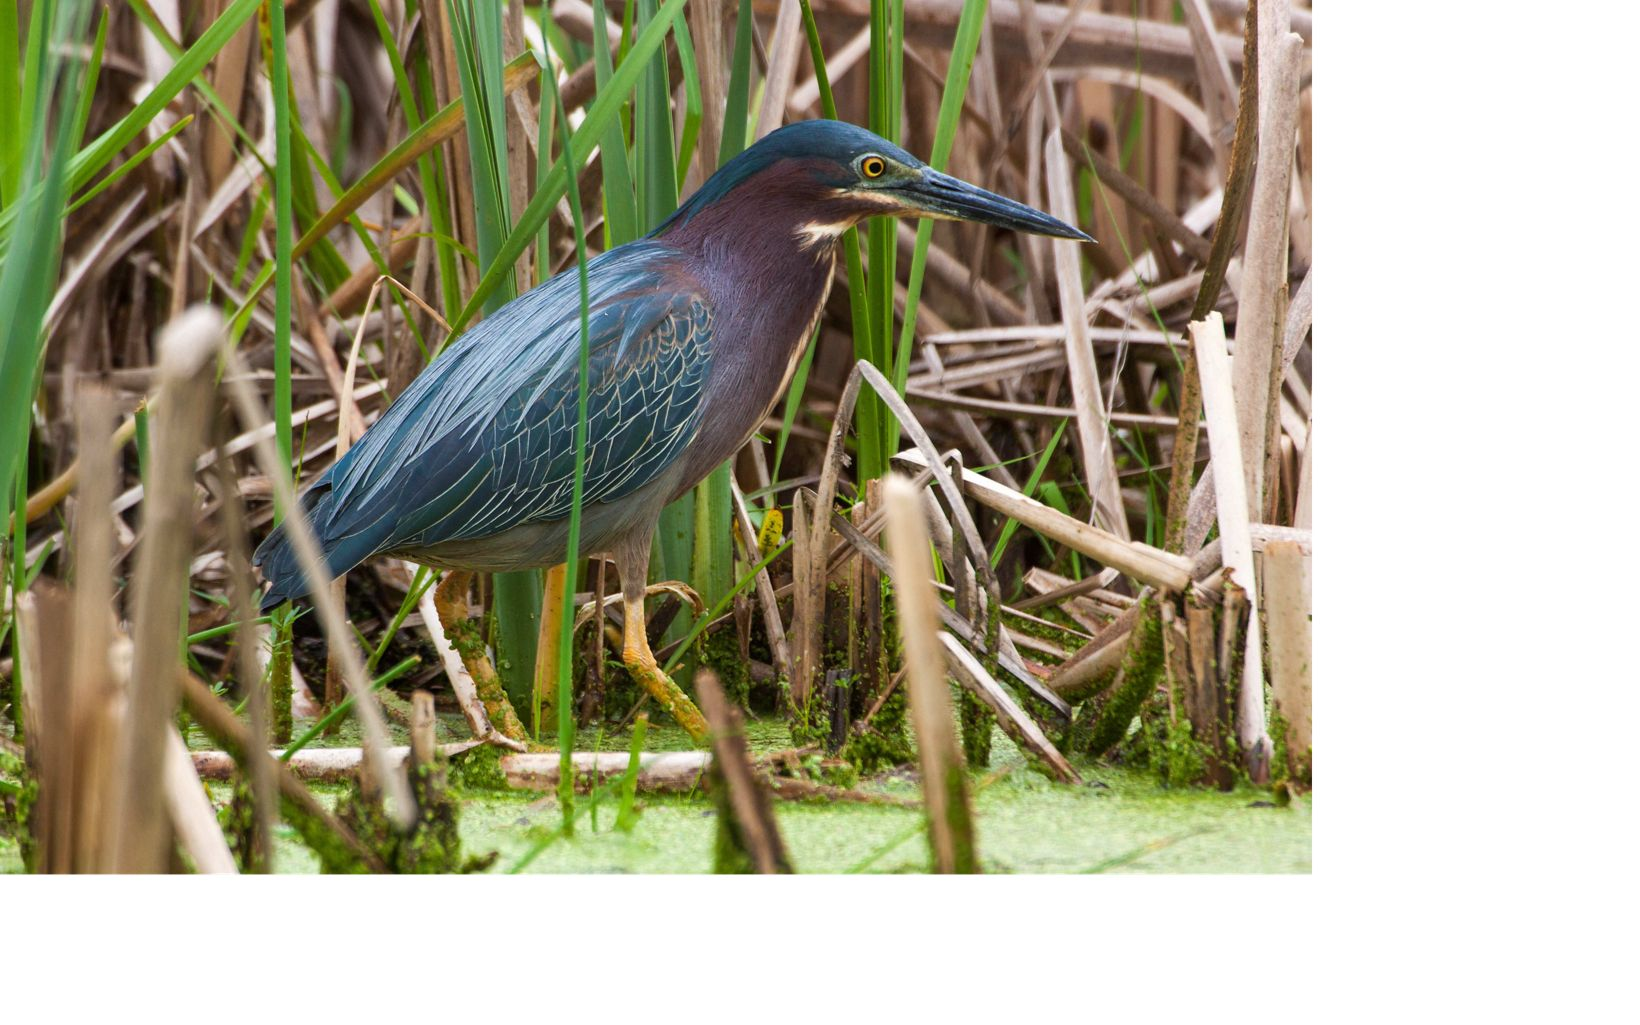 An green and blue bird rests in wetlands.